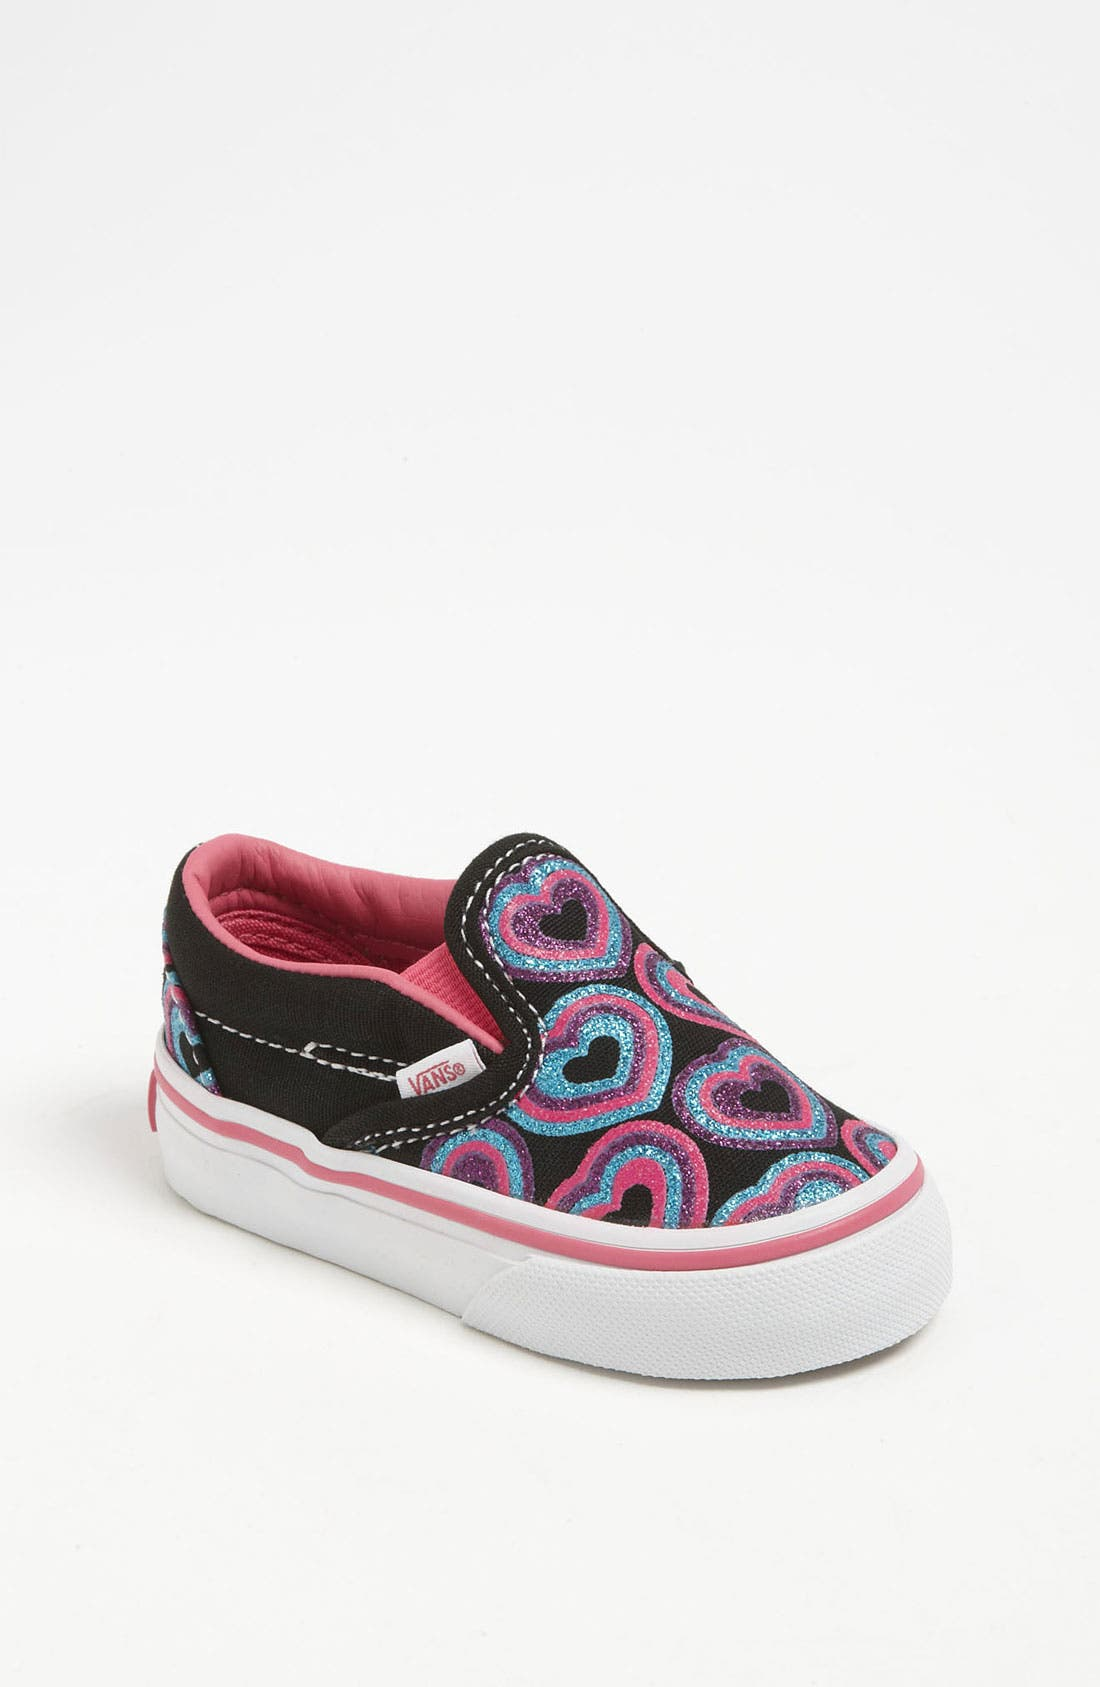 Alternate Image 1 Selected - Vans 'Classic - Glitter Hearts' Slip-On (Baby, Walker & Toddler)